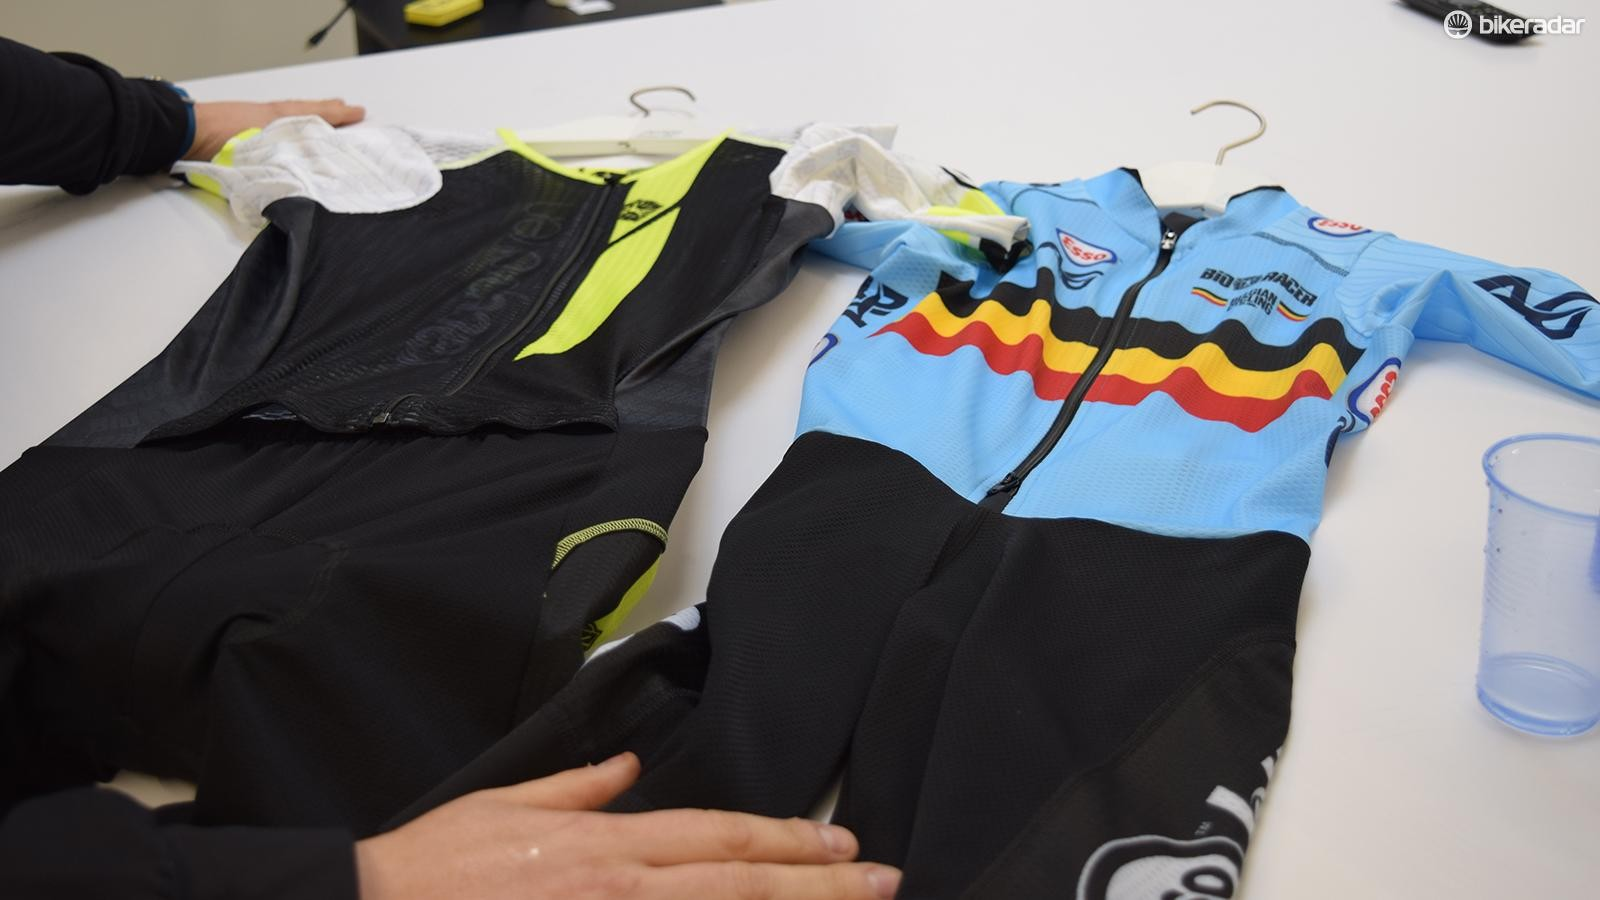 A look at Bioracer's various pro-level skinsuits